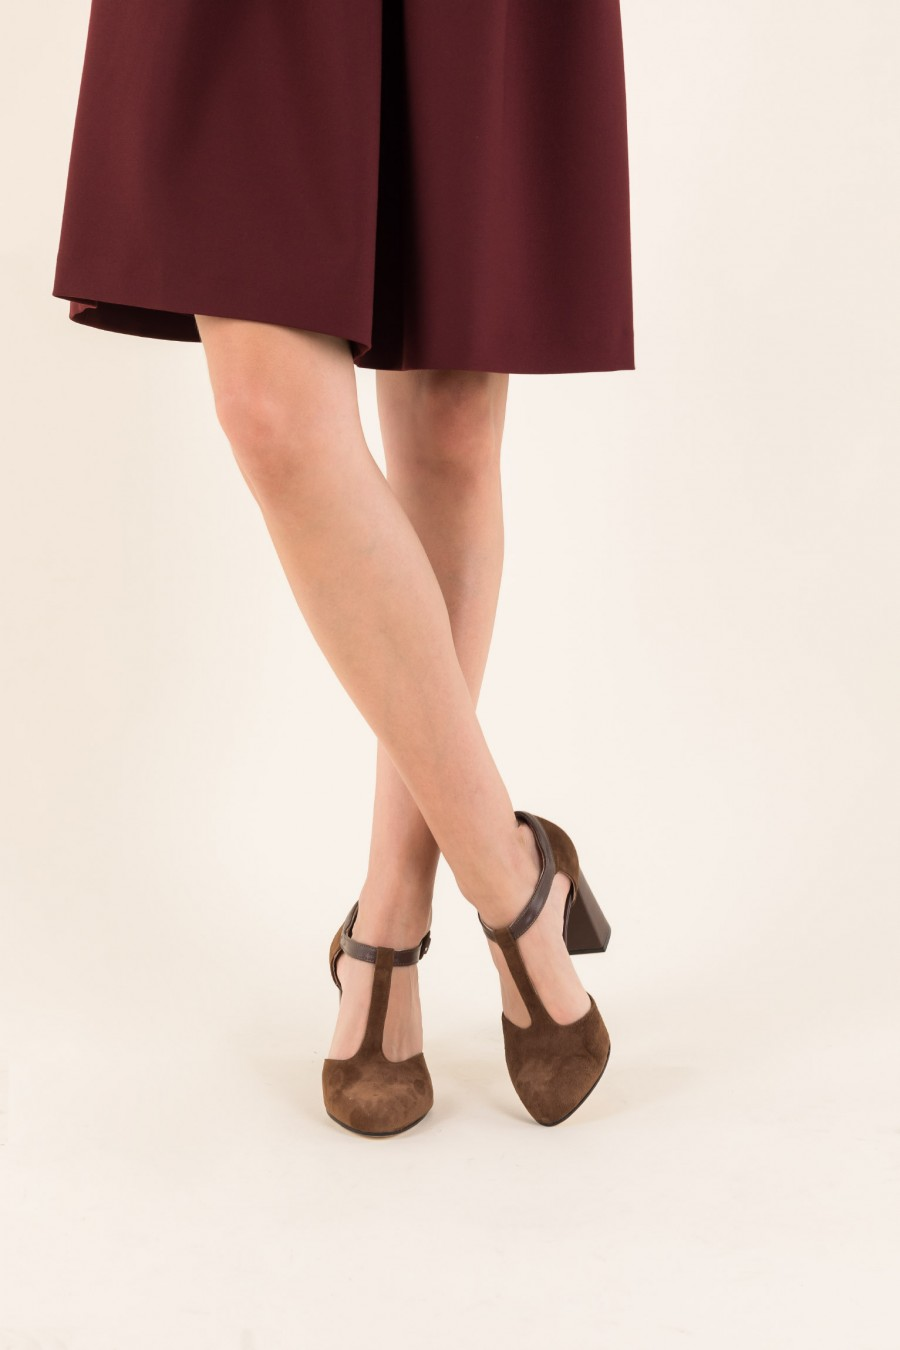 Comfy heels and T-strap shoes